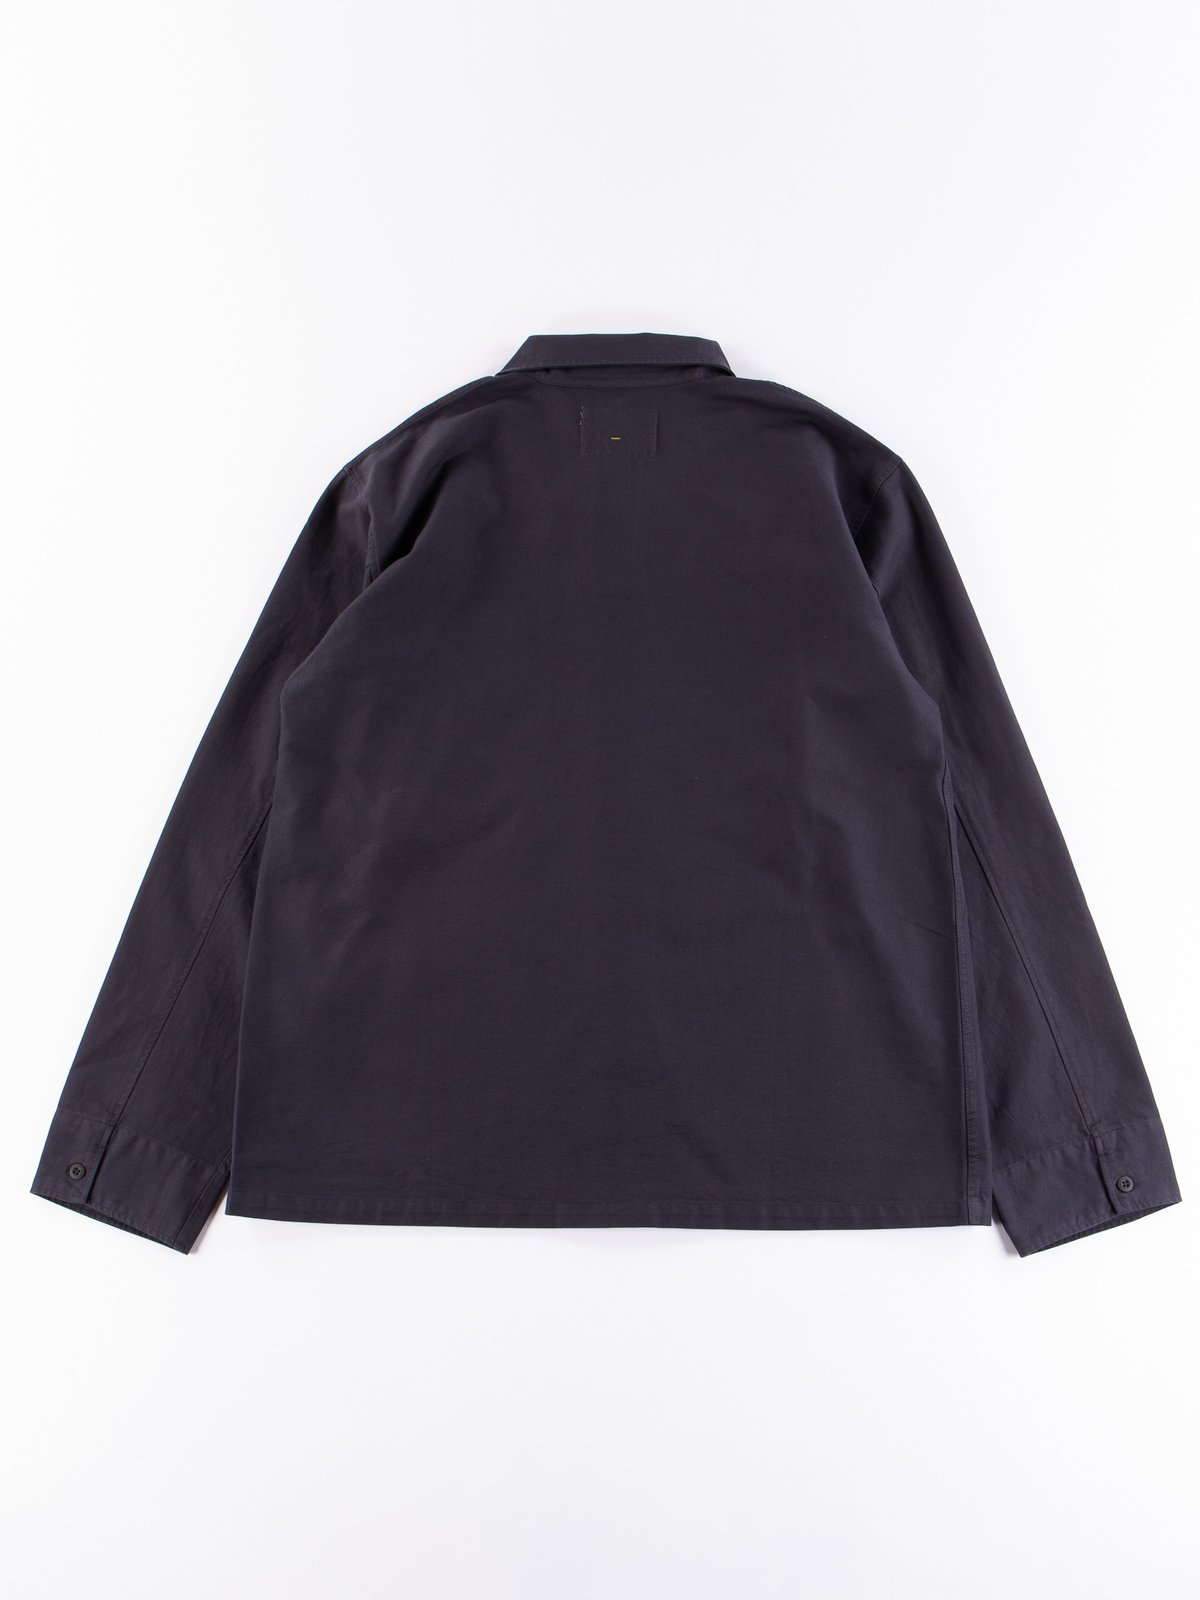 MHL Charcoal Asymmetric Collar Shirt - Image 6